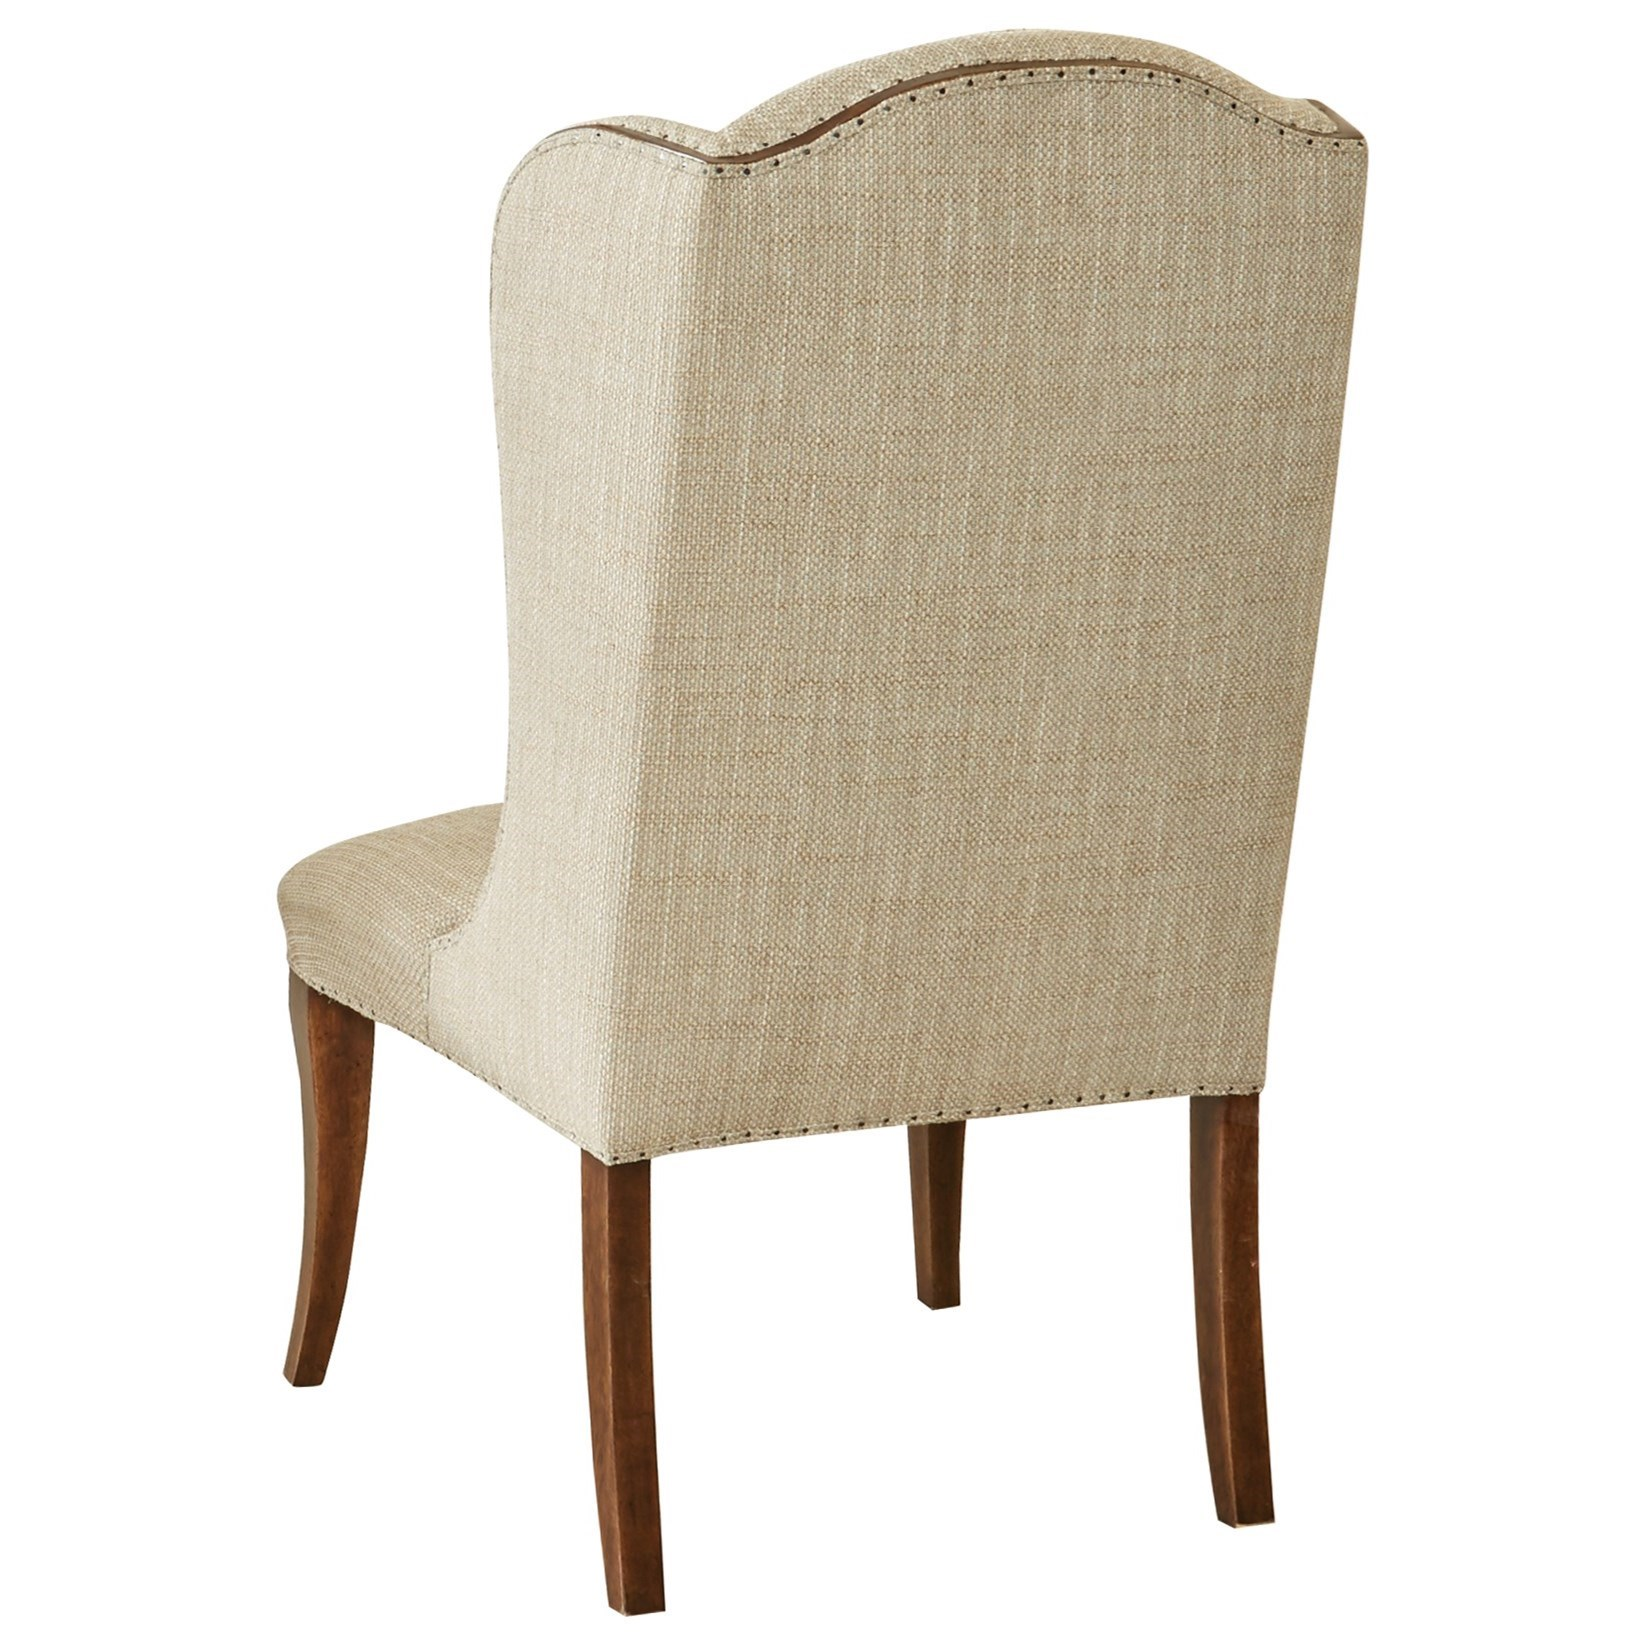 Hooker Furniture Archivist Upholstered Host Chair with